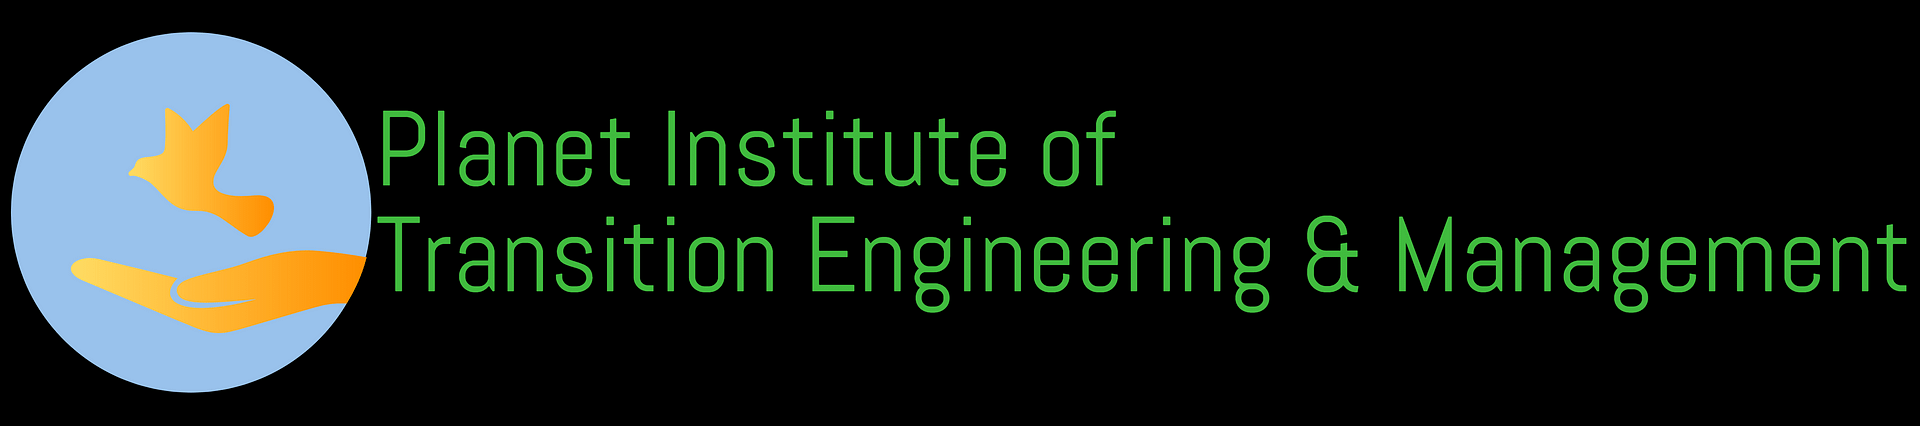 Planet Institute of Transition Engineering & Management